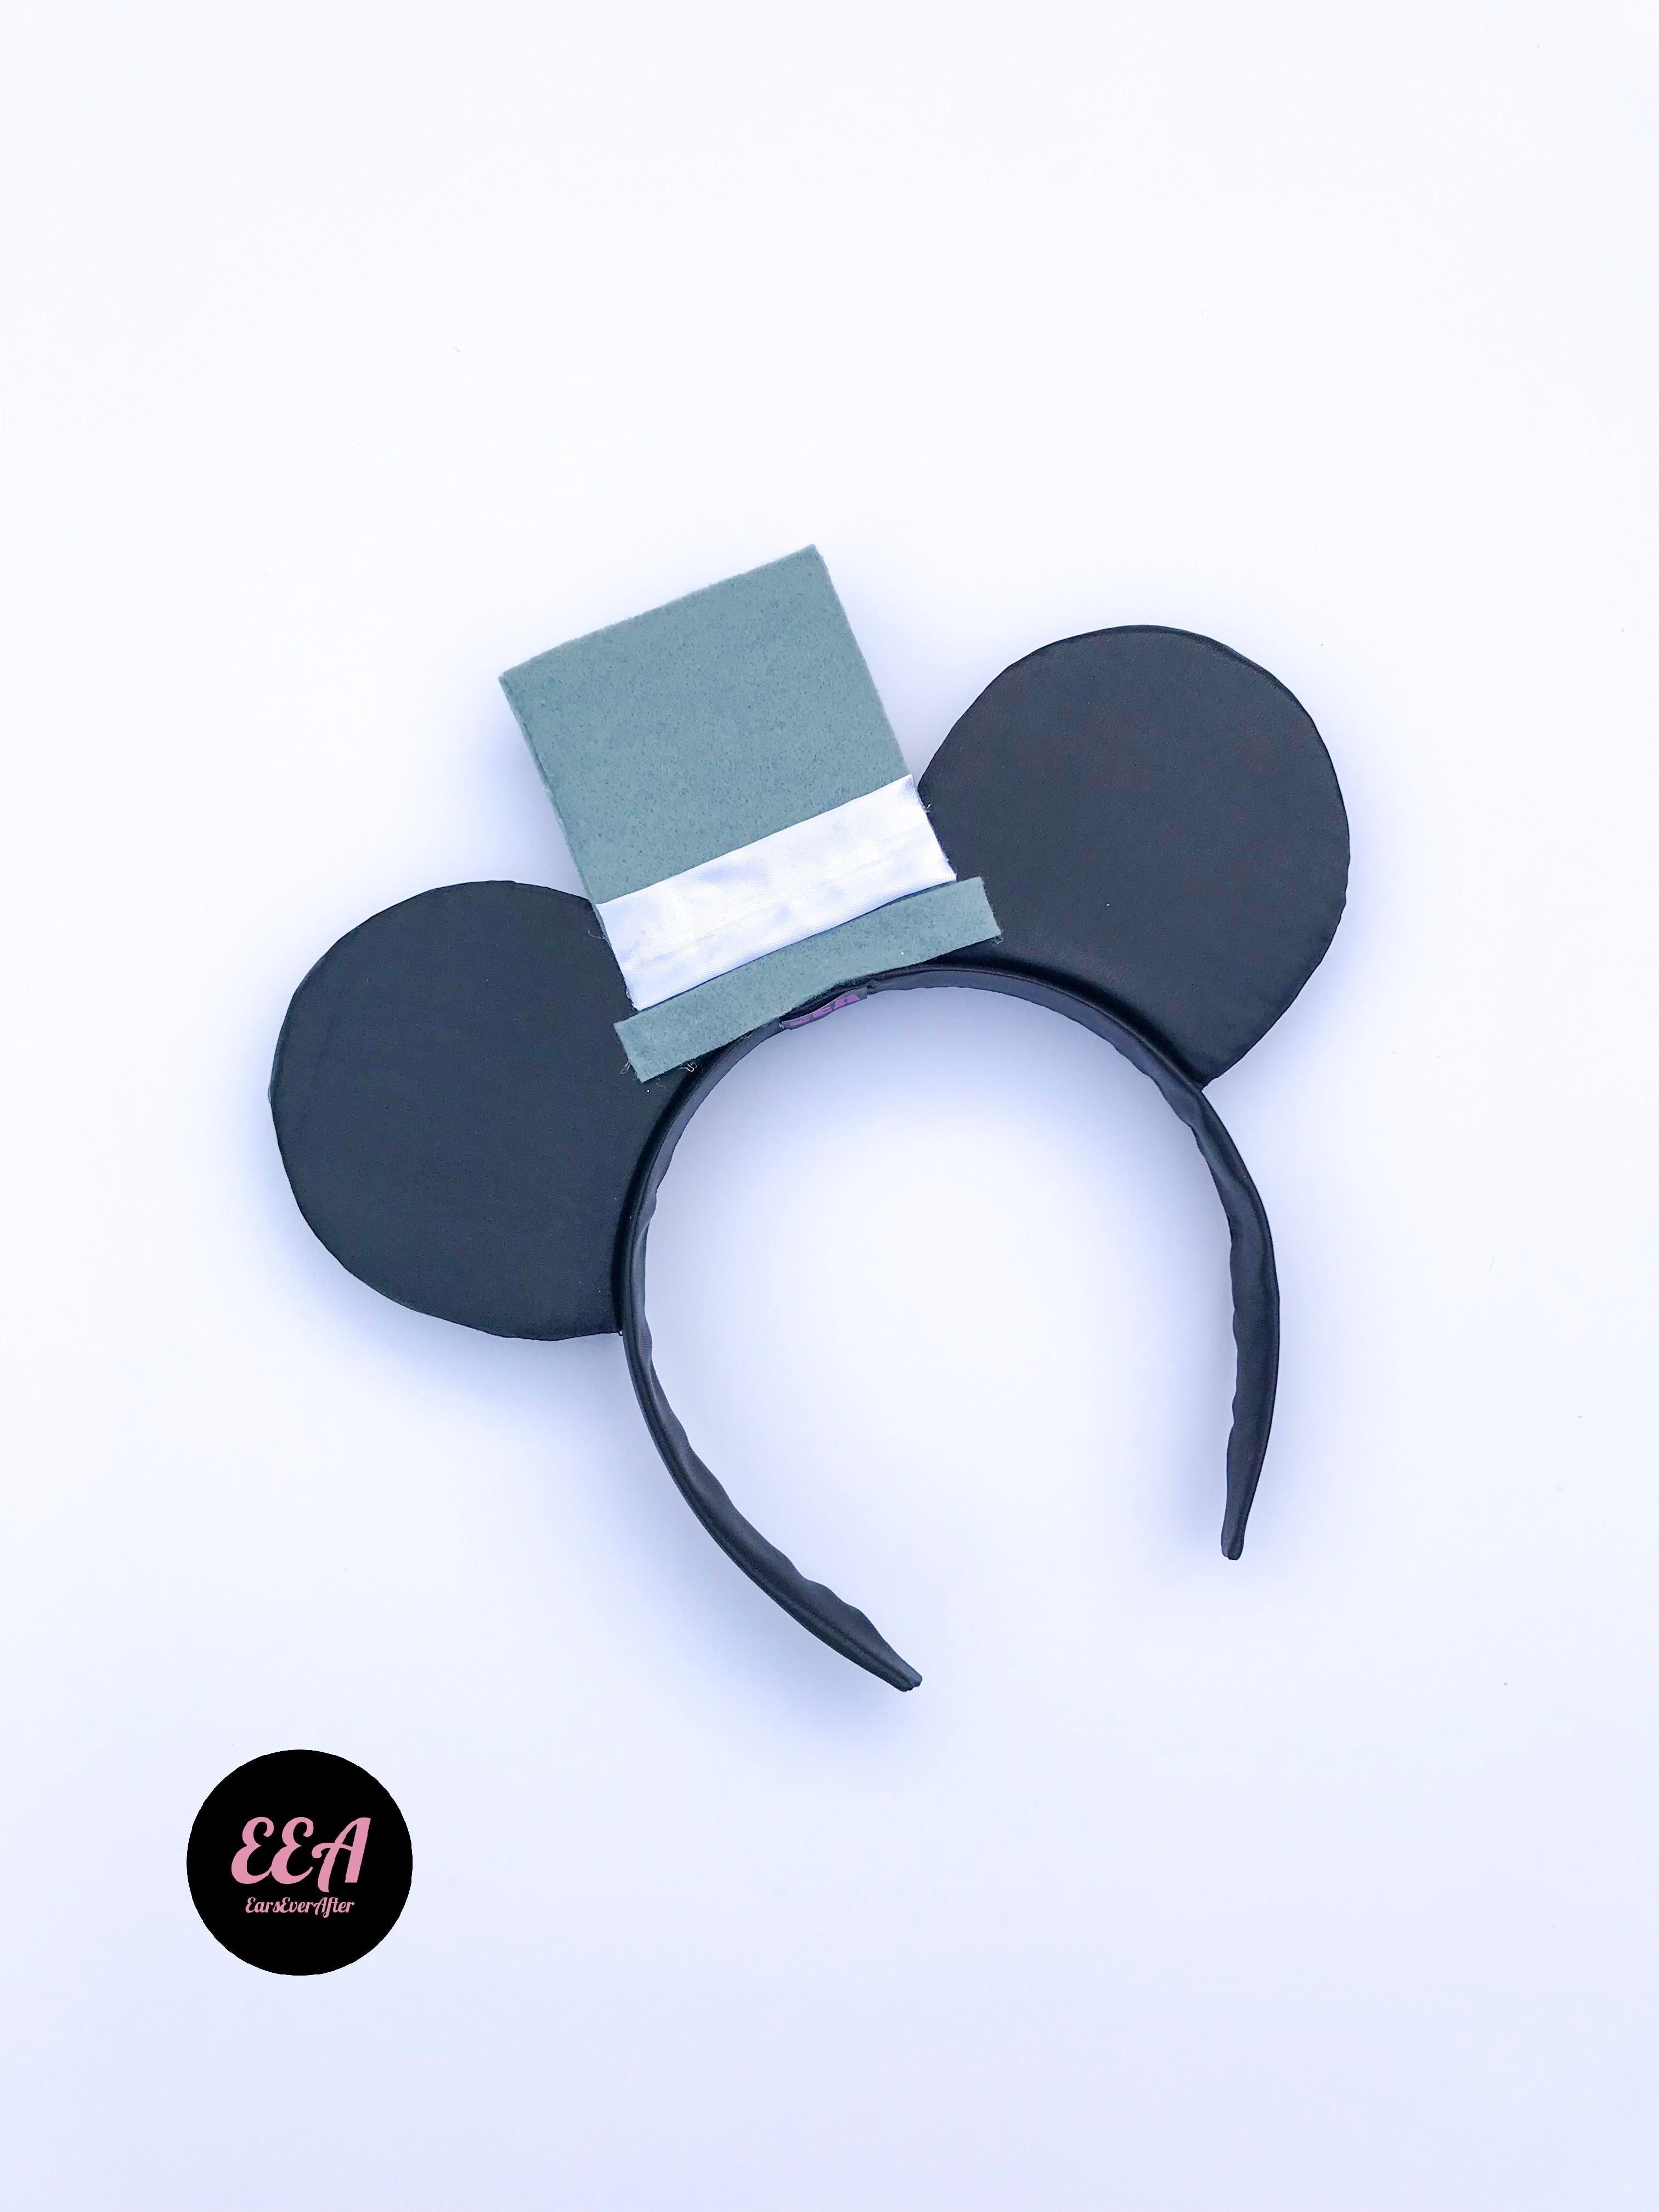 Ears Ever After, Disney Ears, Minnie Mouse Ears, Mickey Ears, Custom Mickey Ears, Mouse Ears, UK Disney Ears, Minnie Ears, Mickey Ears, Disney, Disney Wedding Ears, Disney Groom Ears, Groom Ears, Bridal Ears, Wedding Ears